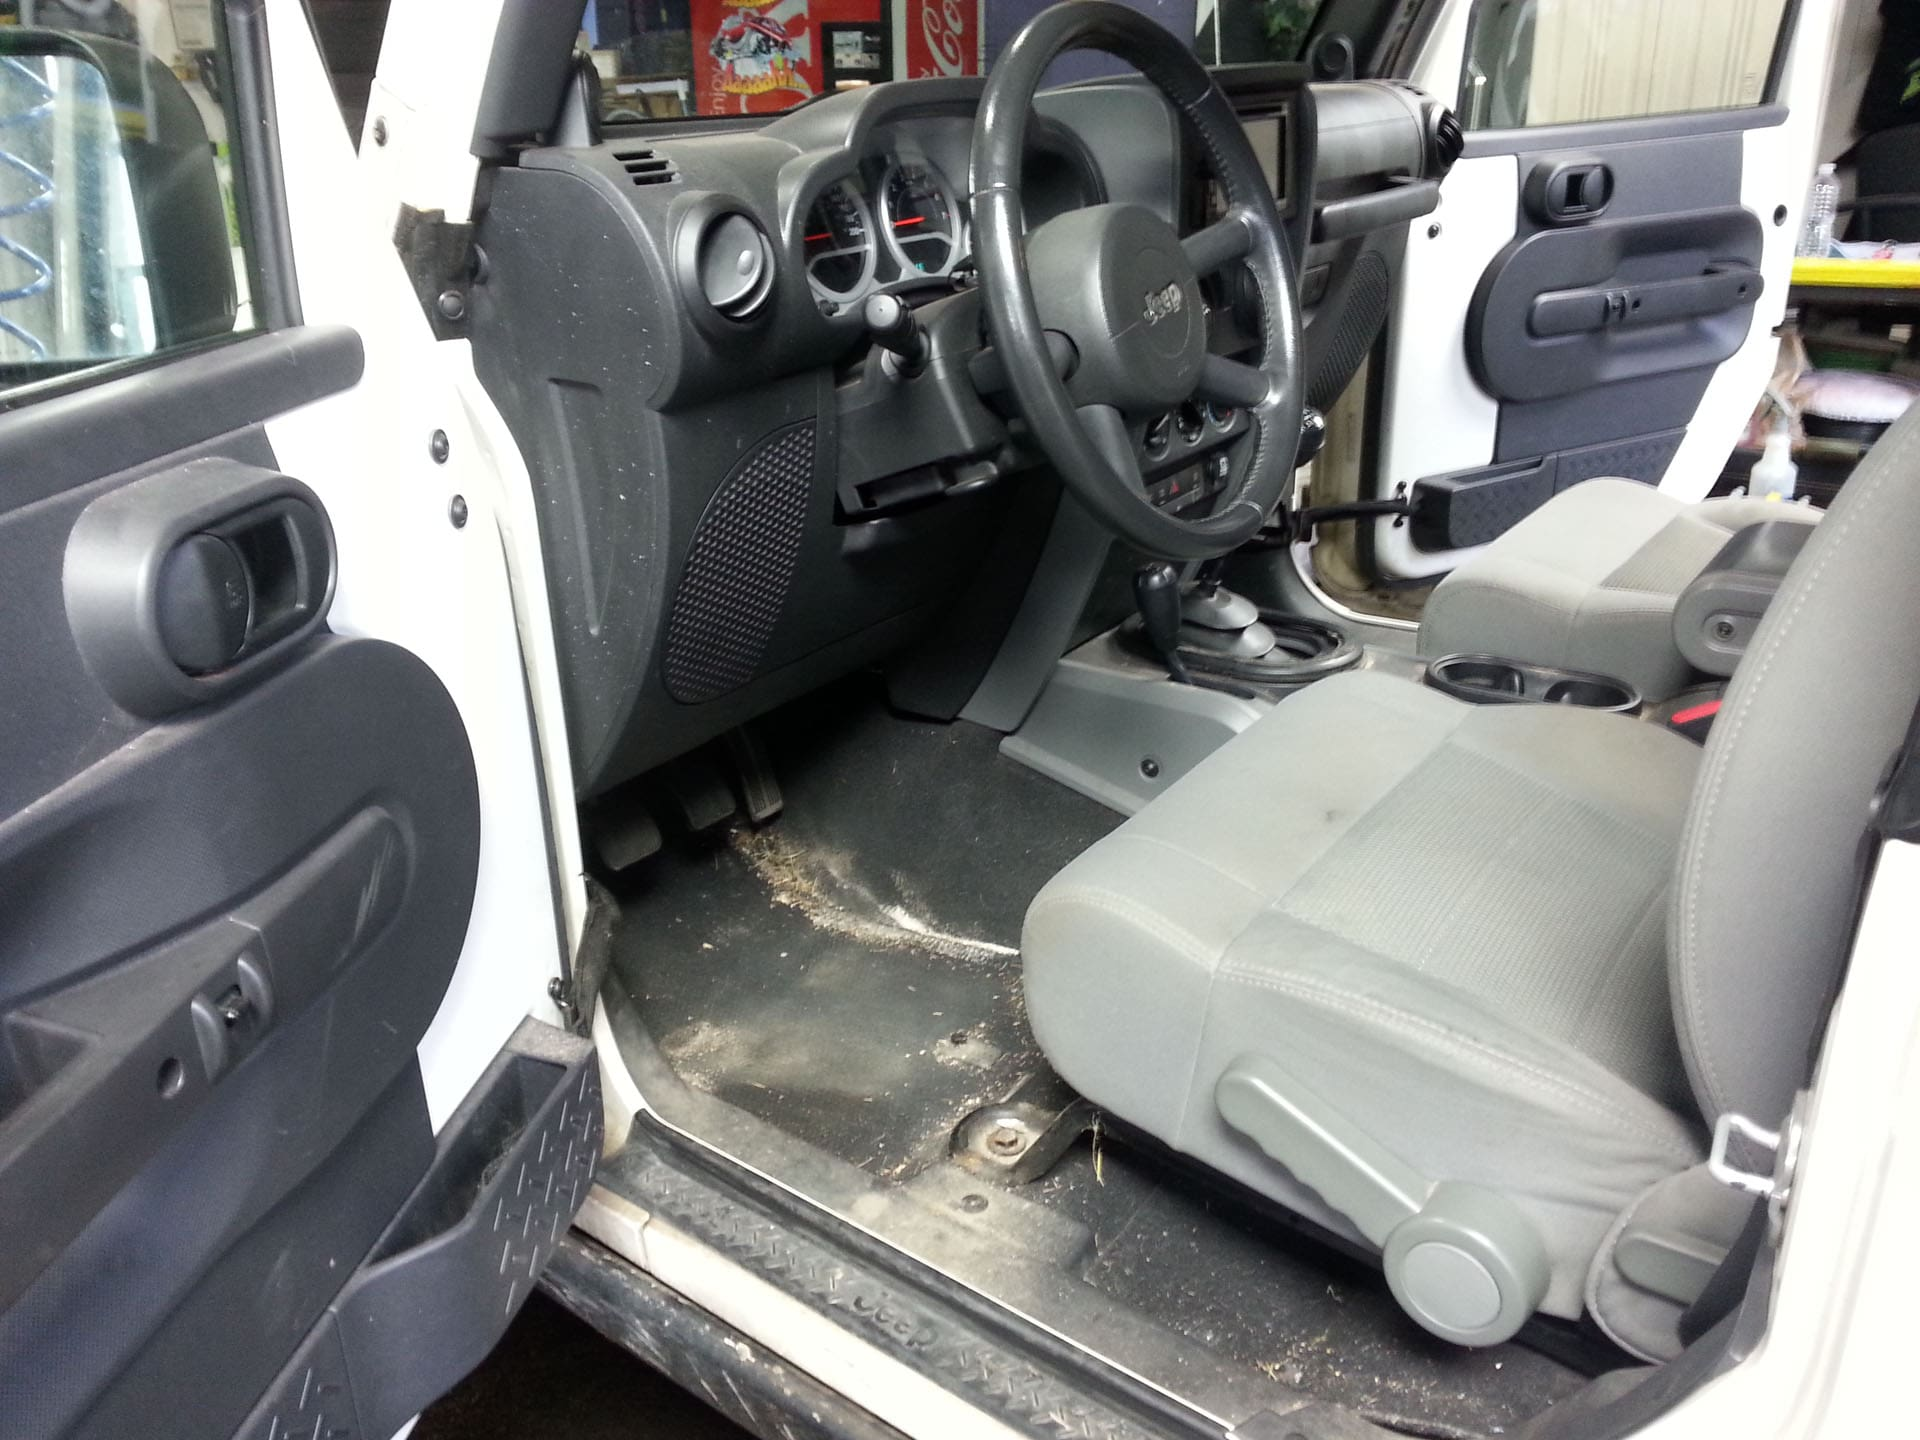 Jeep Interior Detailing: Before